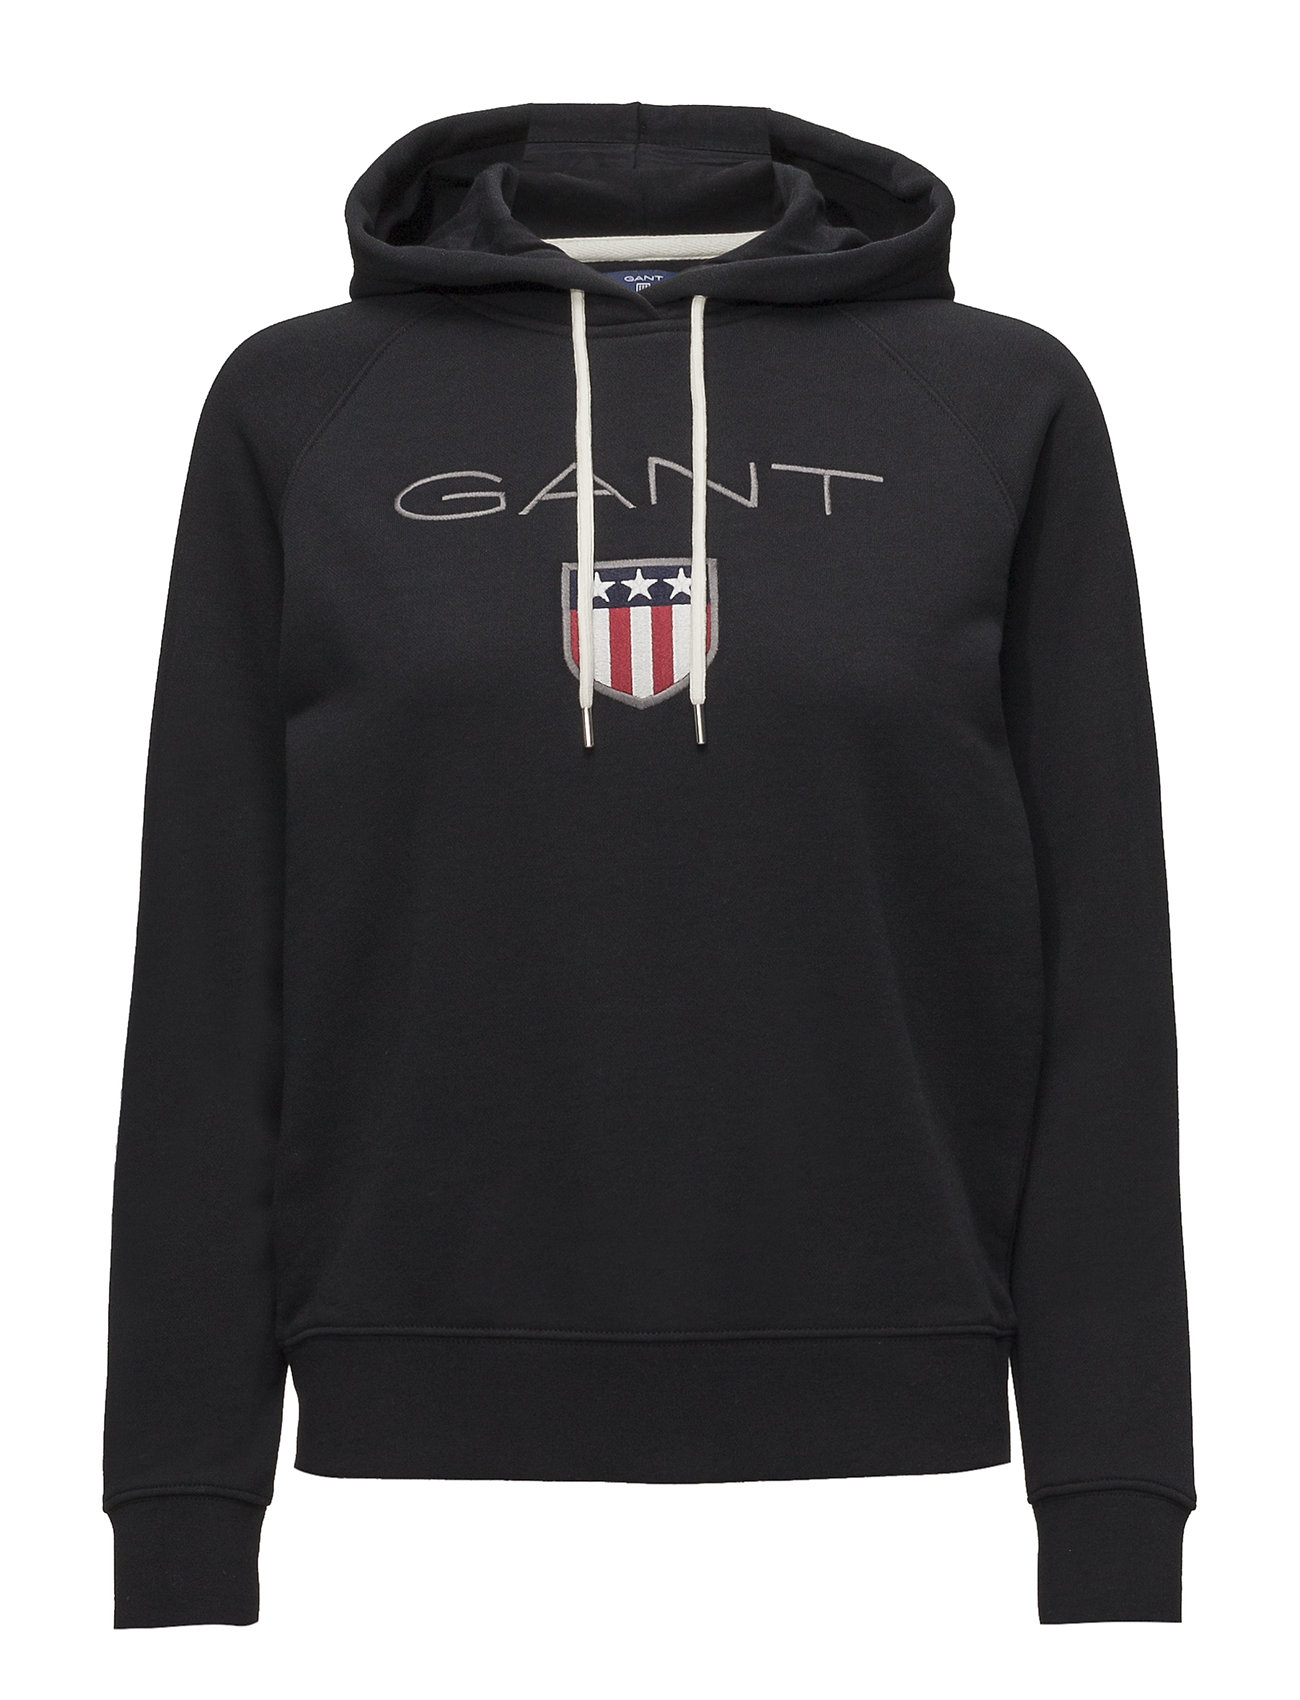 GANT GANT SHIELD SWEAT HOODIE - BLACK